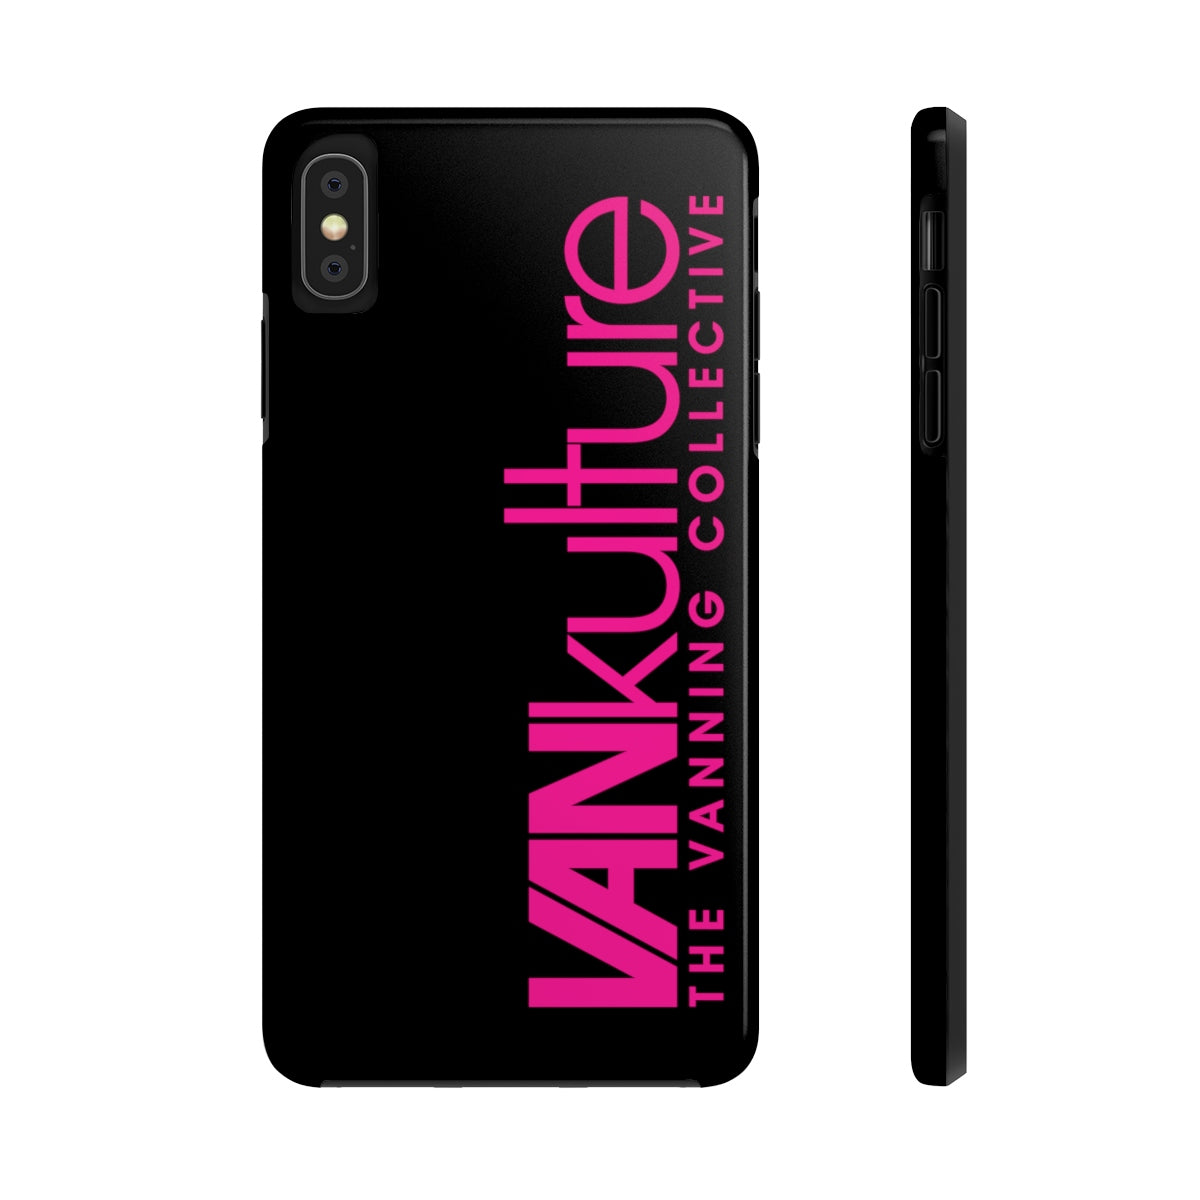 VANkulture Case Mate Tough Phone Cases